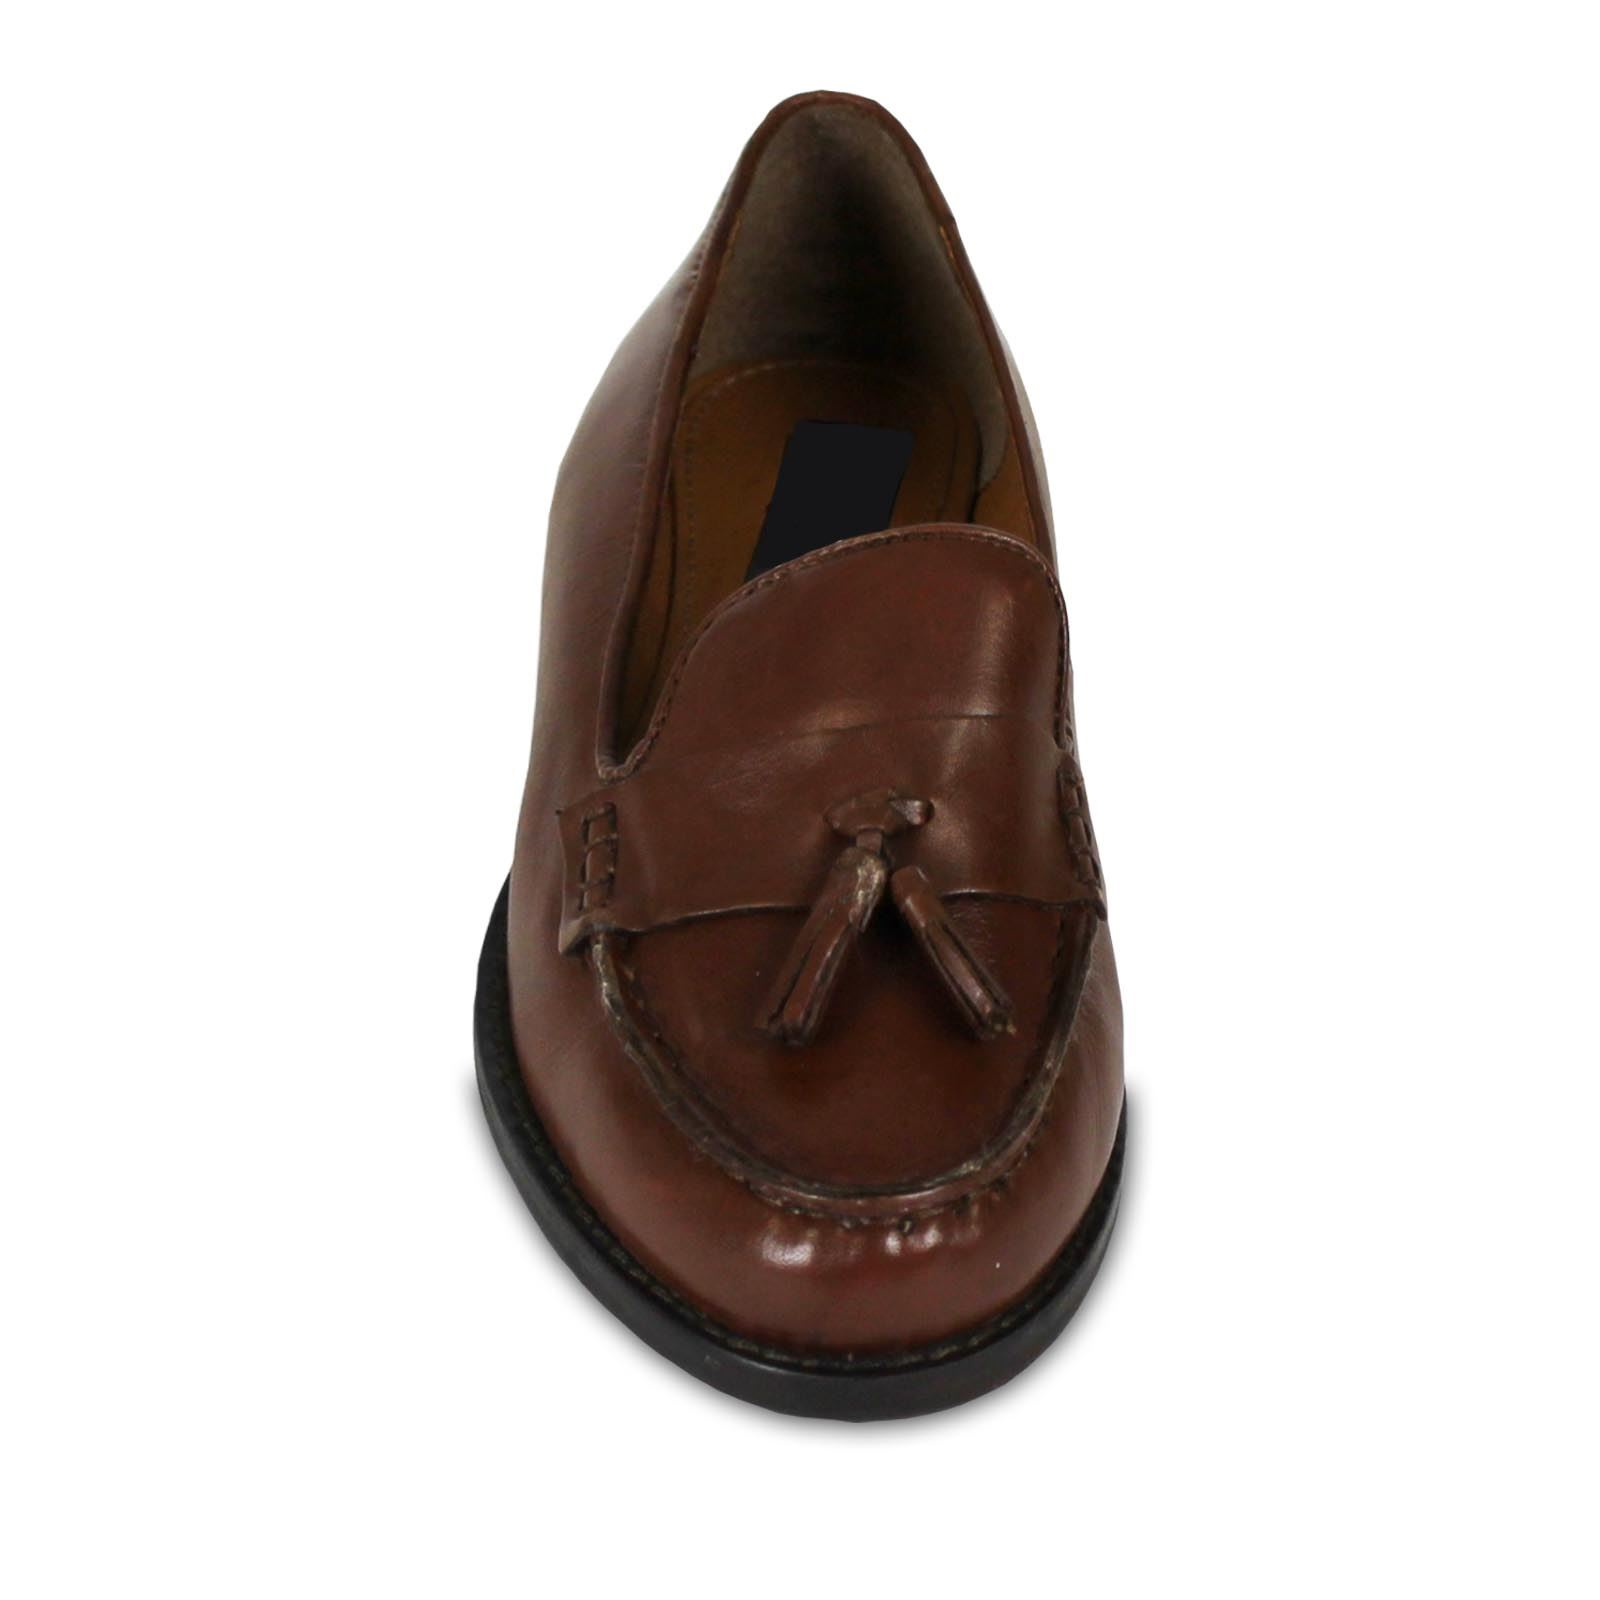 G.H. Bass & Co. UK & Europe. Browse the latest collection of Penny Loafers and Bass Weejuns. Quality, handcrafted footwear with FREE UK & EU delivery!